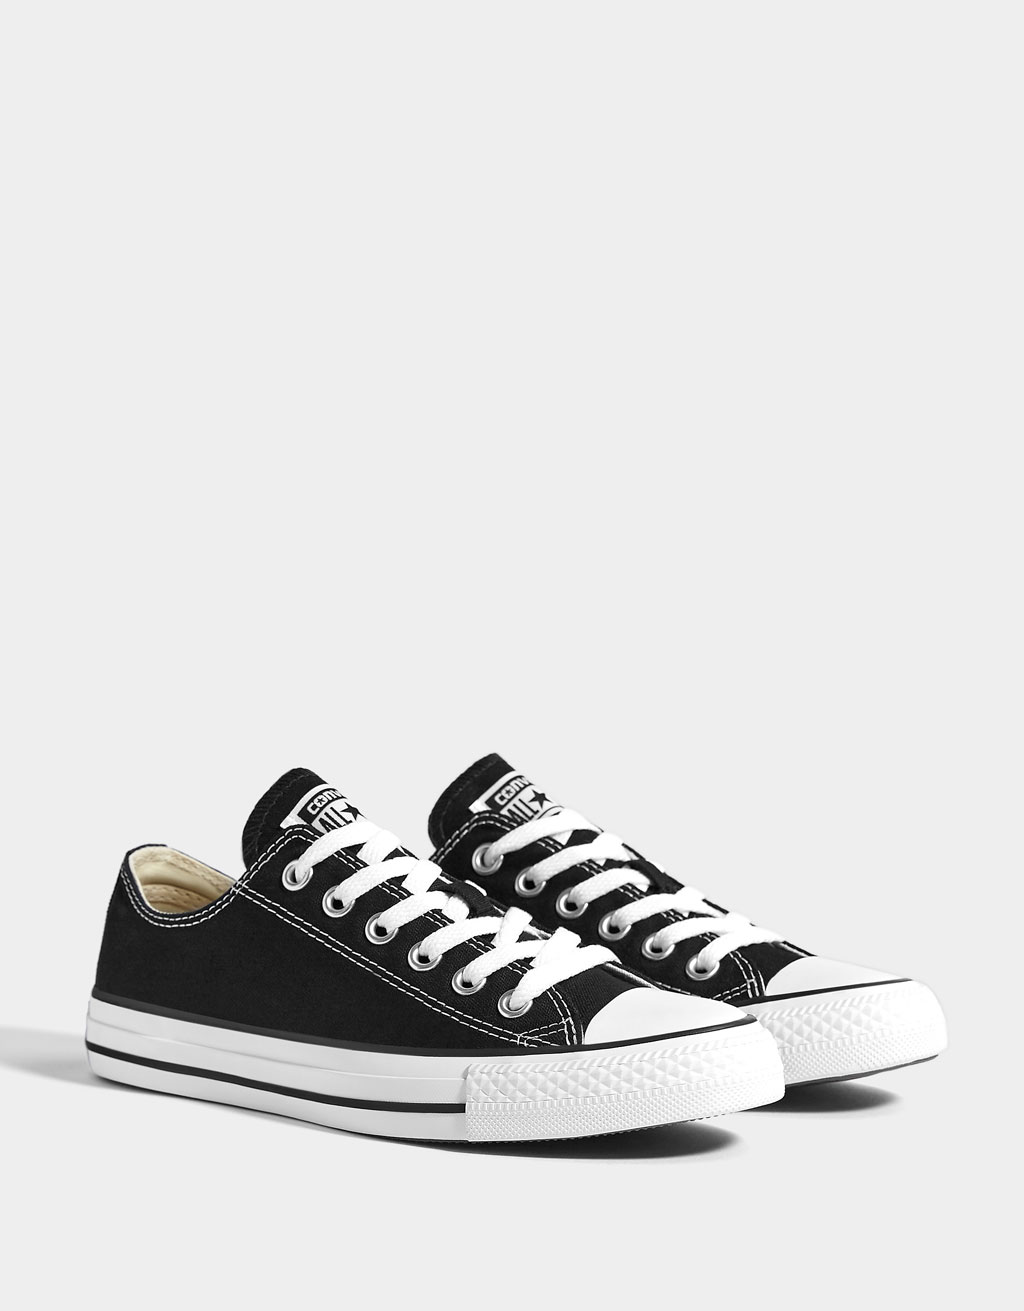 Sabatilla teixit CONVERSE ALL STAR home